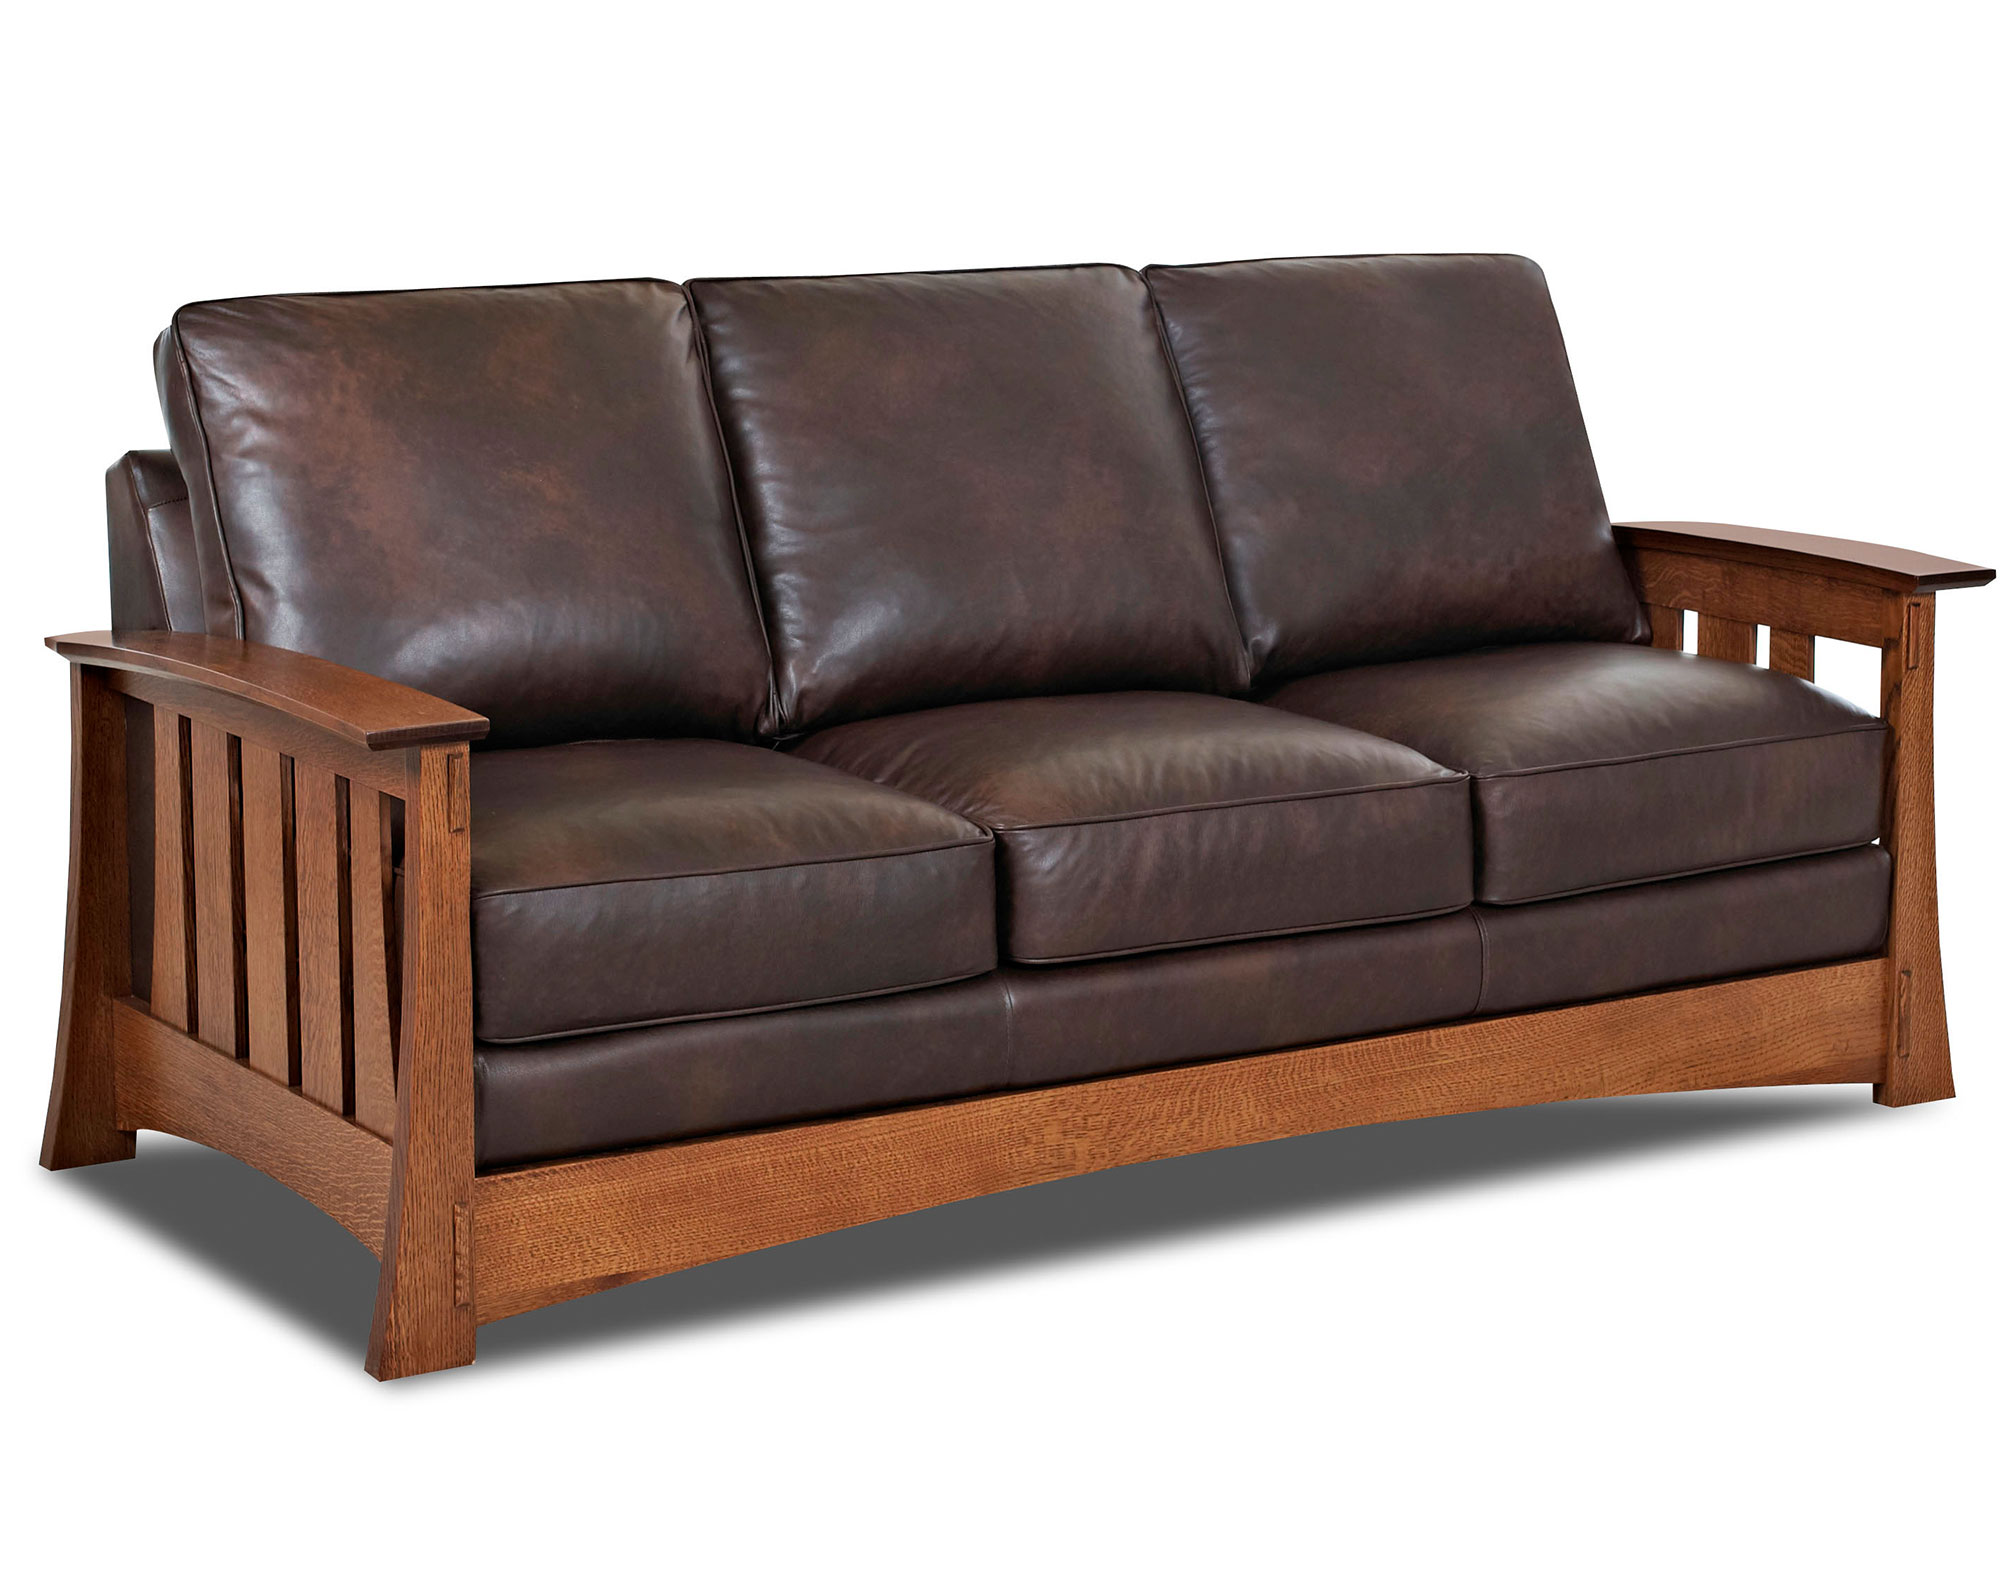 Highlands 83 Mission Style Leather Queen Sofas And Sectionals